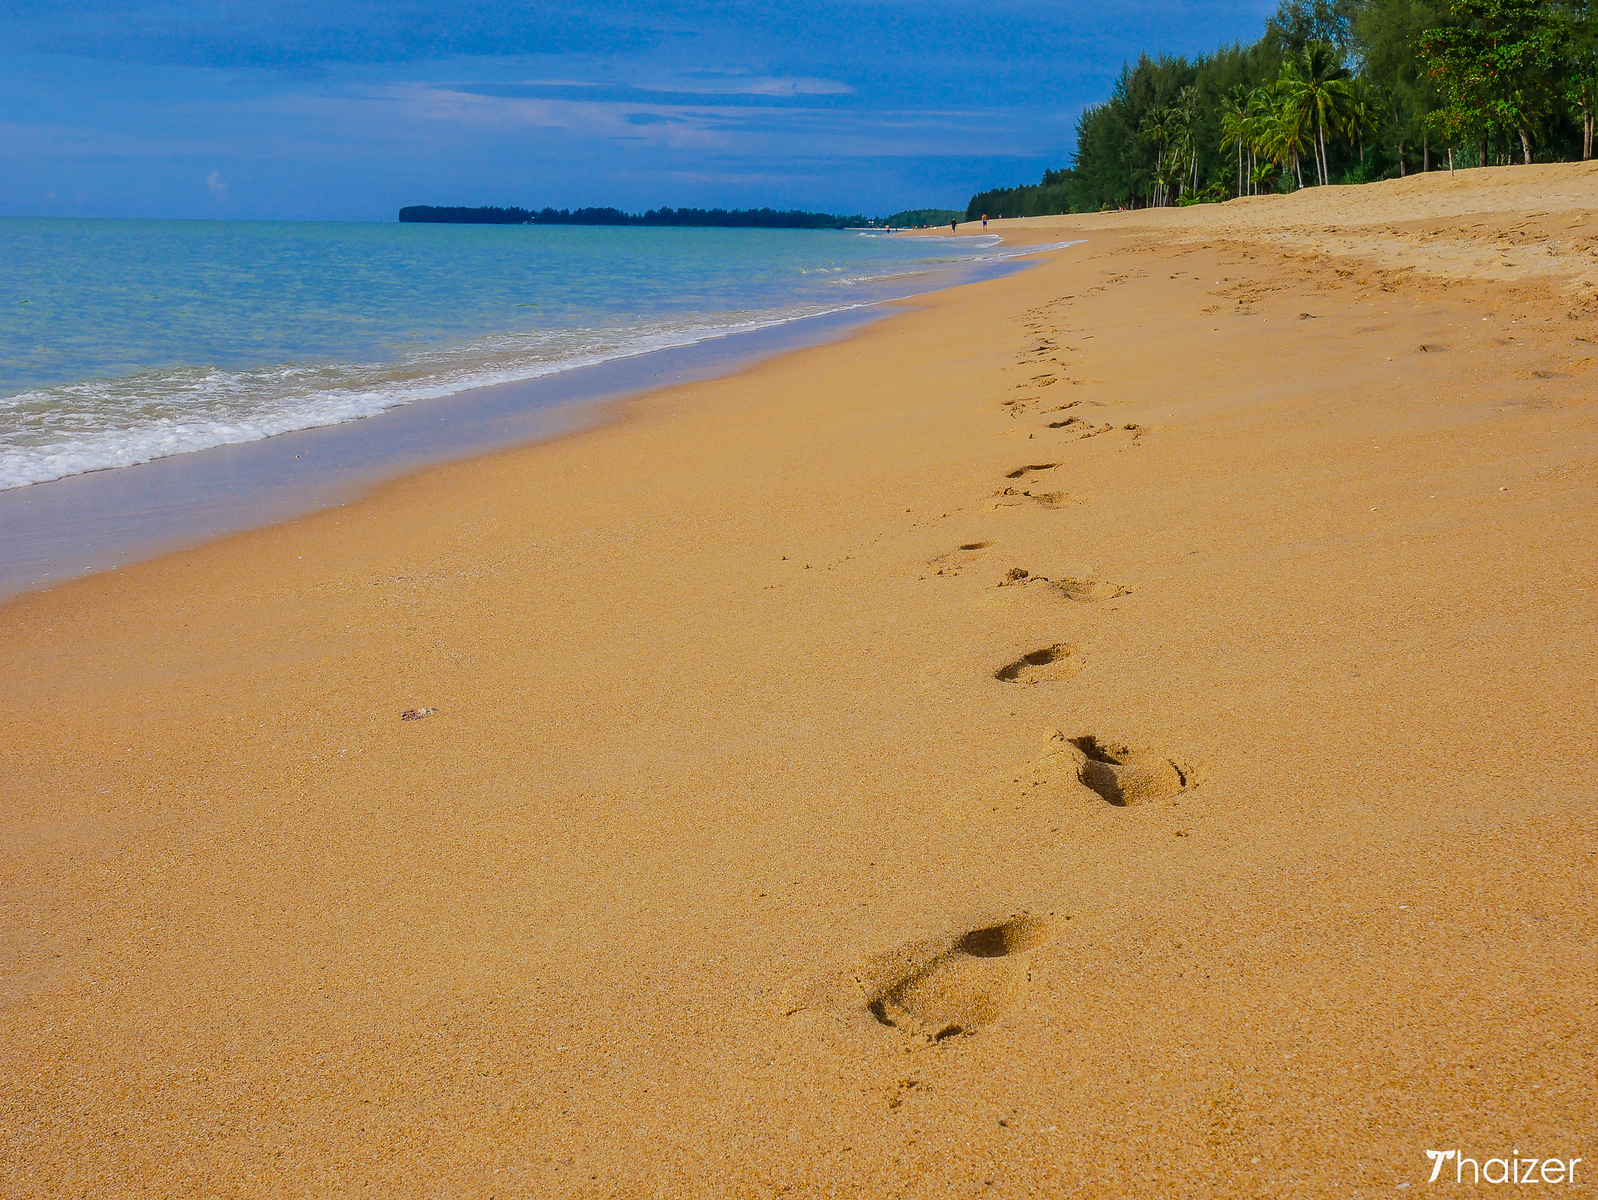 footprints in the sand, Khao Lak